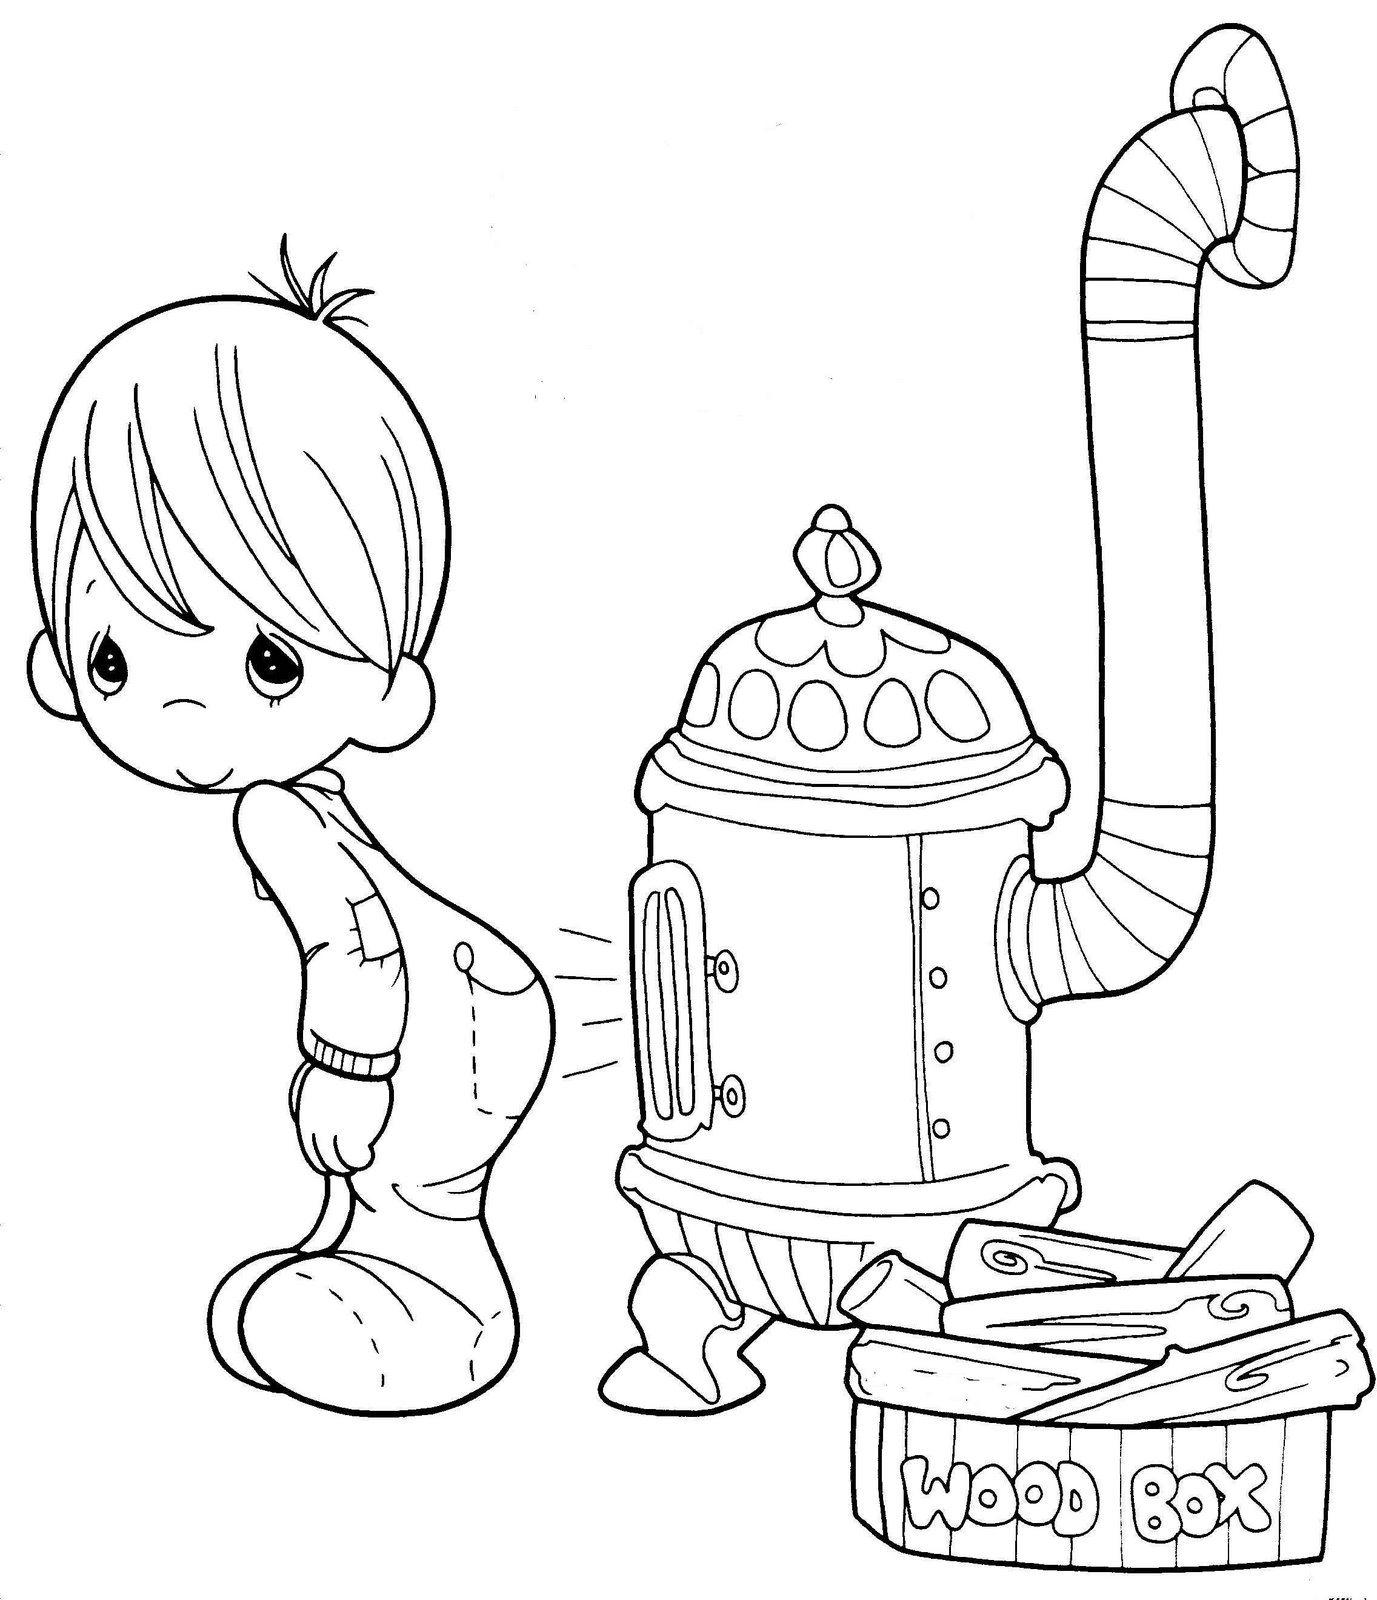 sleepover coloring pages invitations for sleepover party precious moments sleepover coloring pages